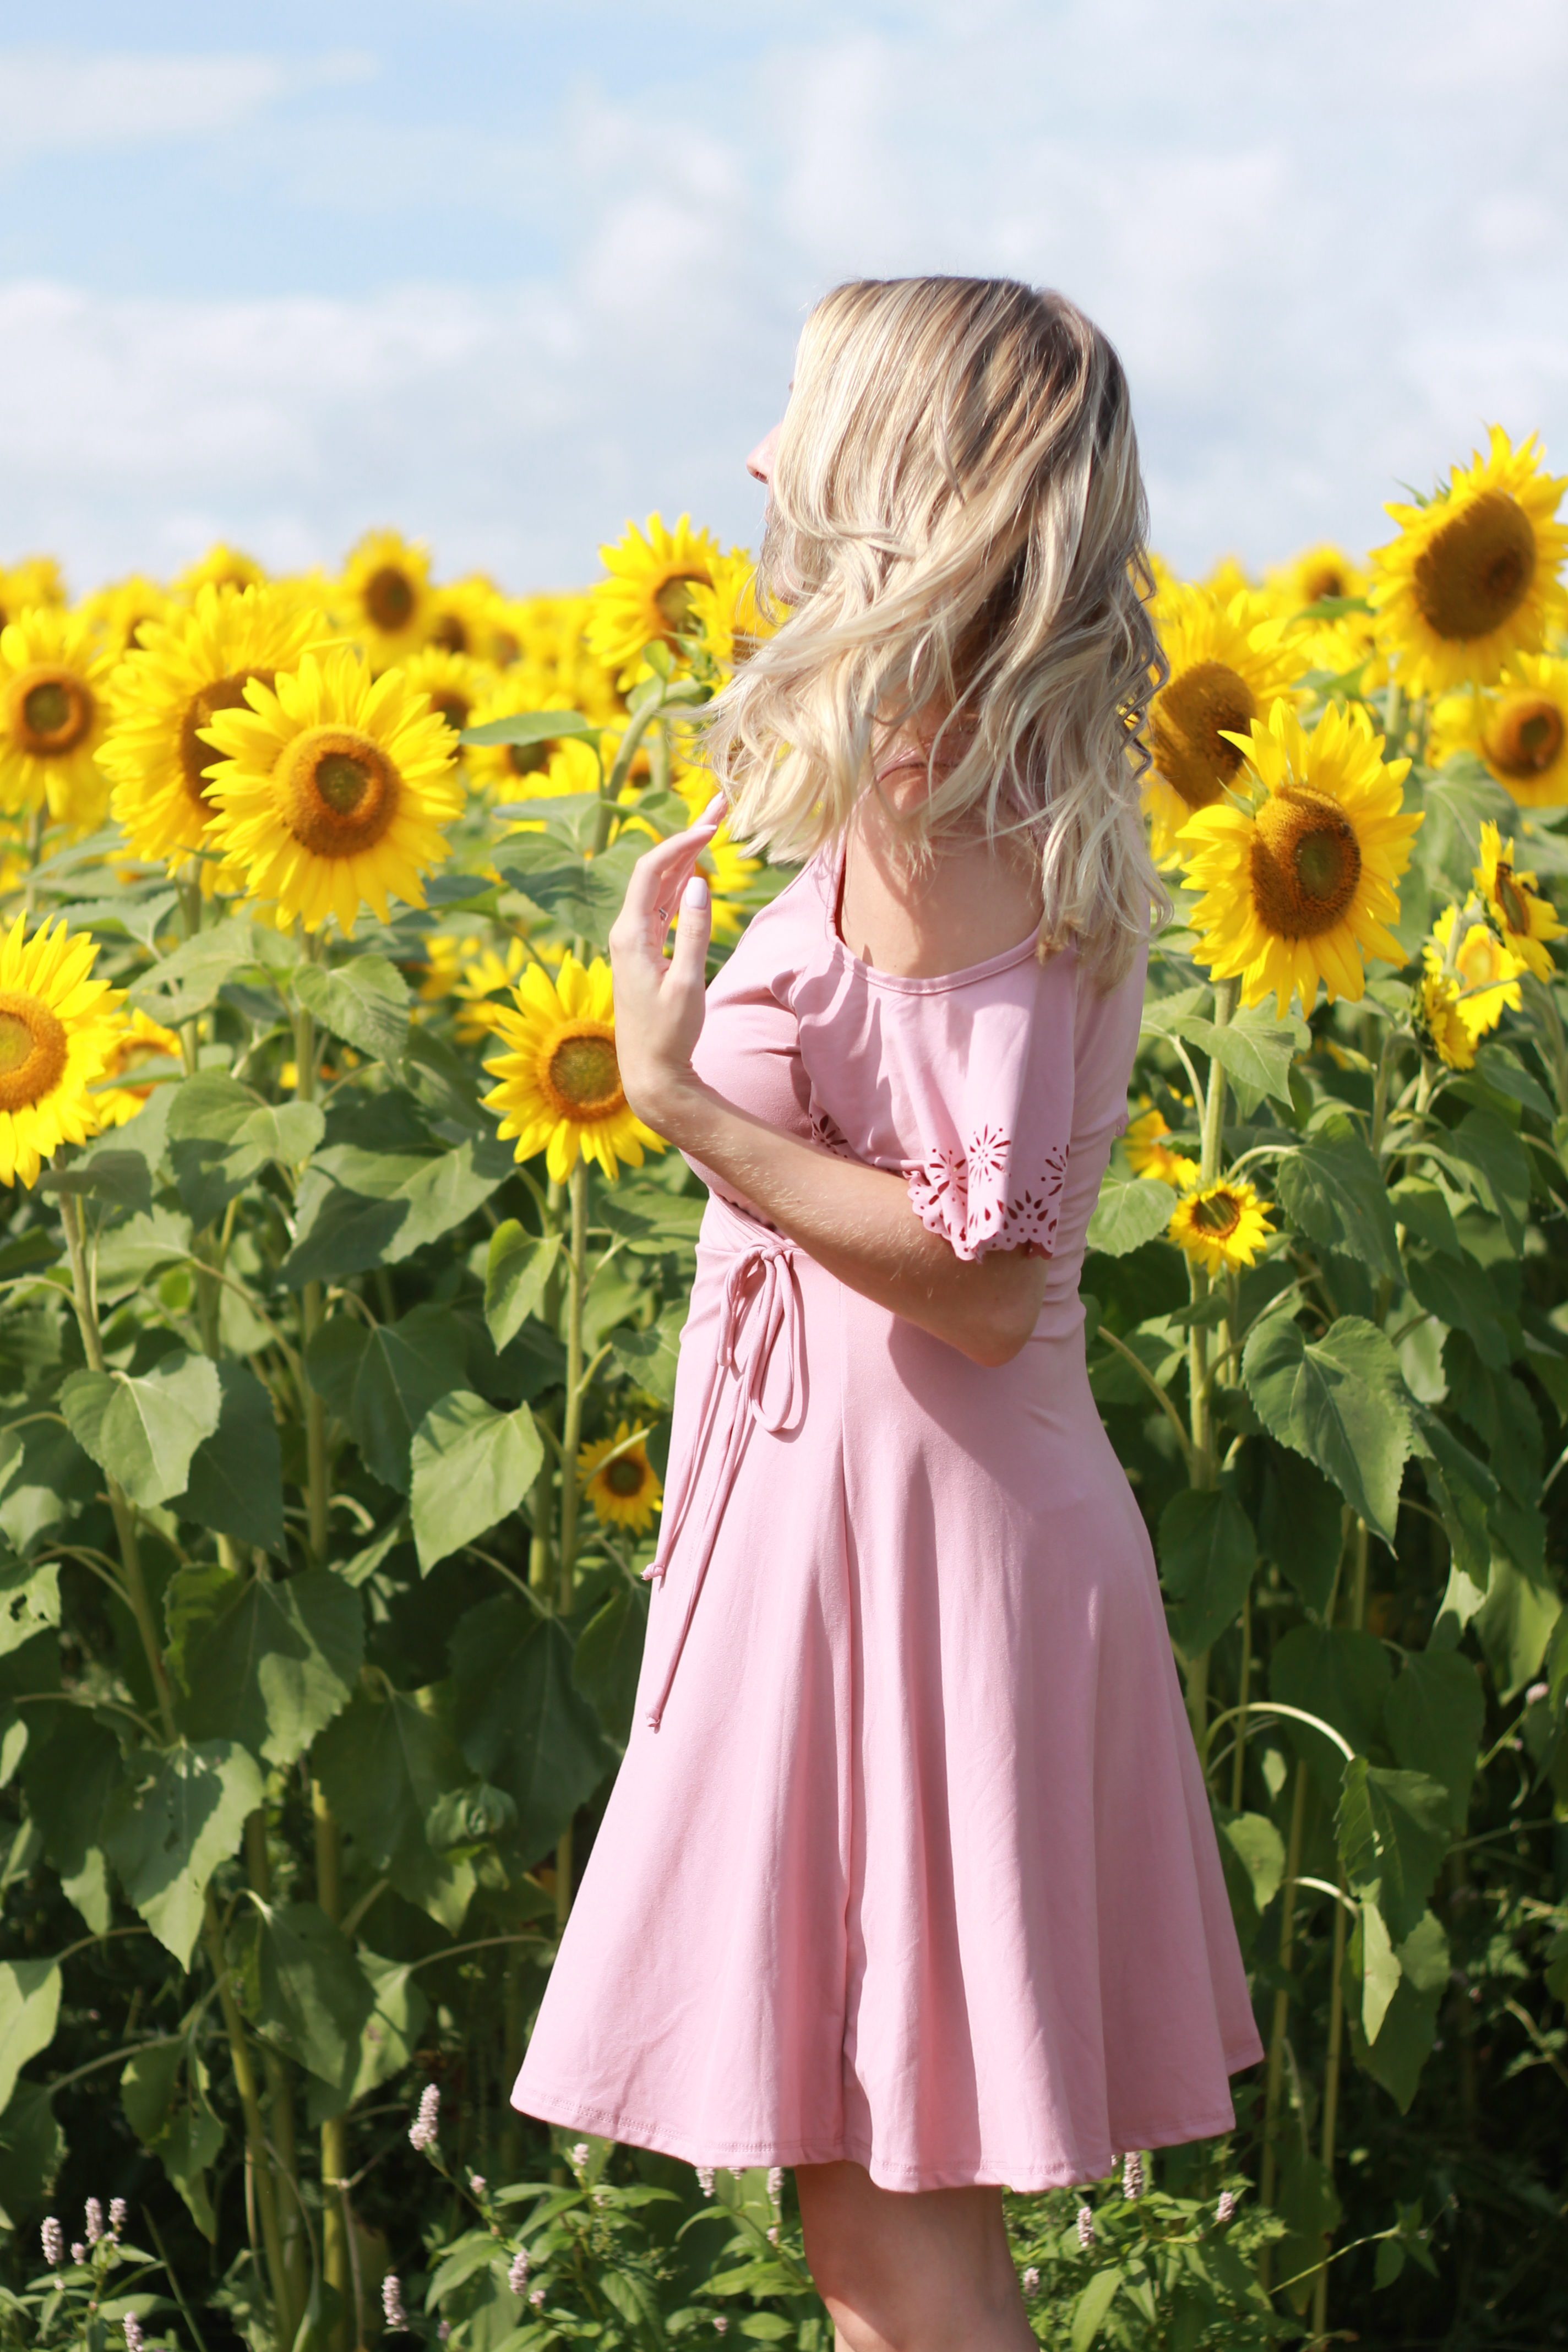 Sunflower fields at Colby Farm | Dress from Francesca's